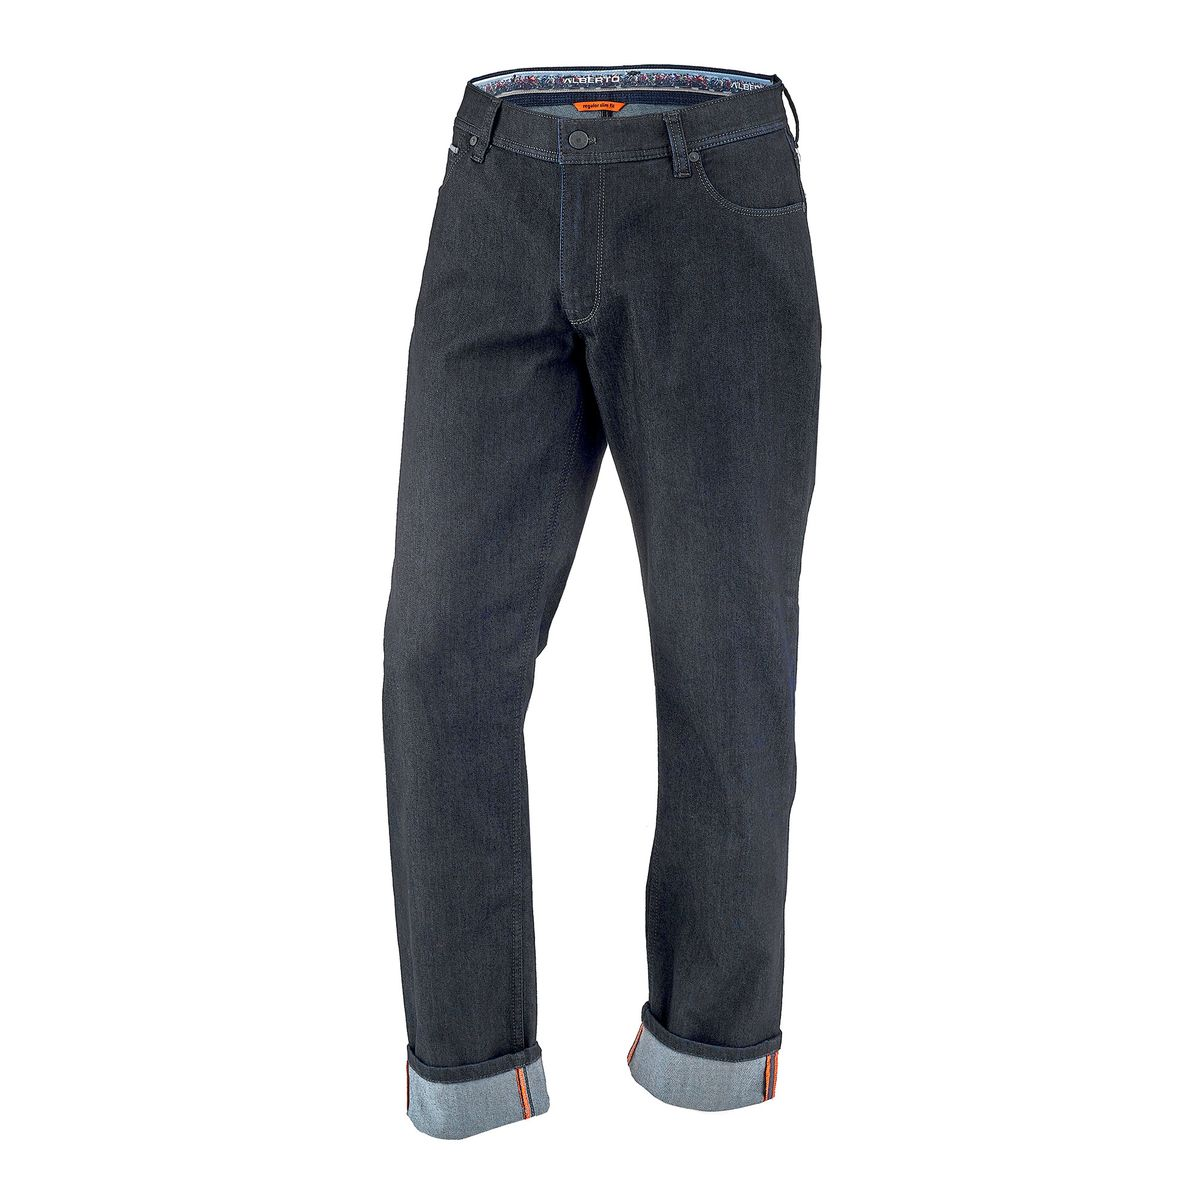 Ecorepel Denim Jeans